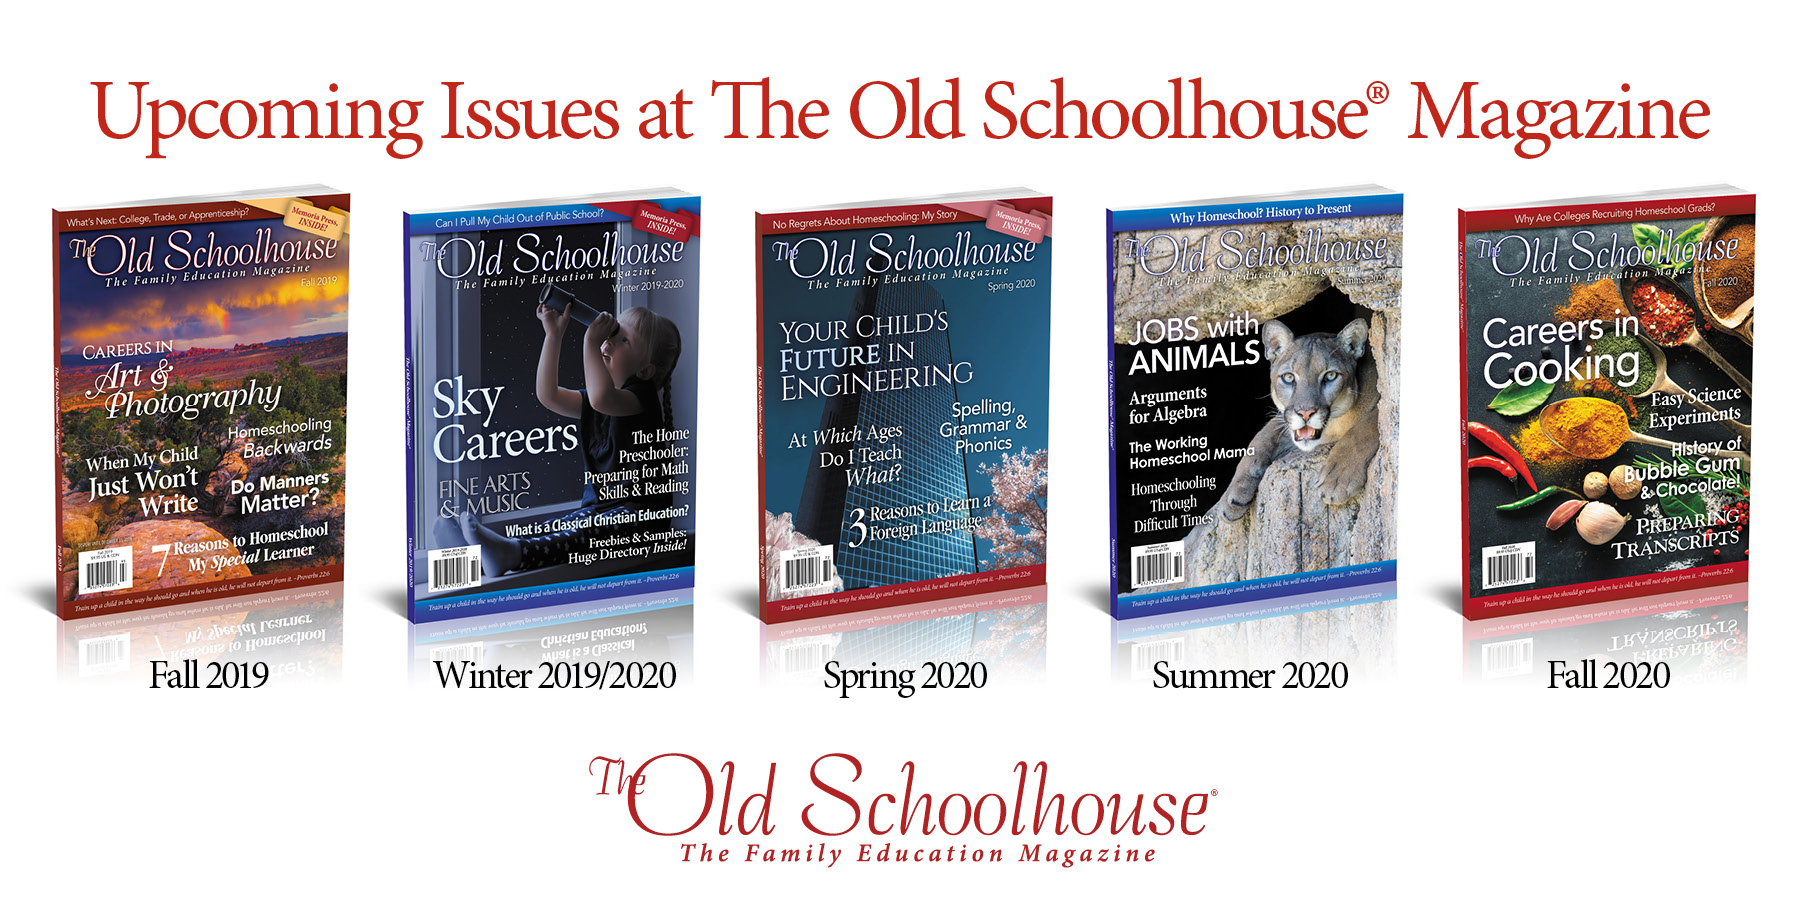 Writer's Guidelines and Upcoming Themes - The Old Schoolhouse